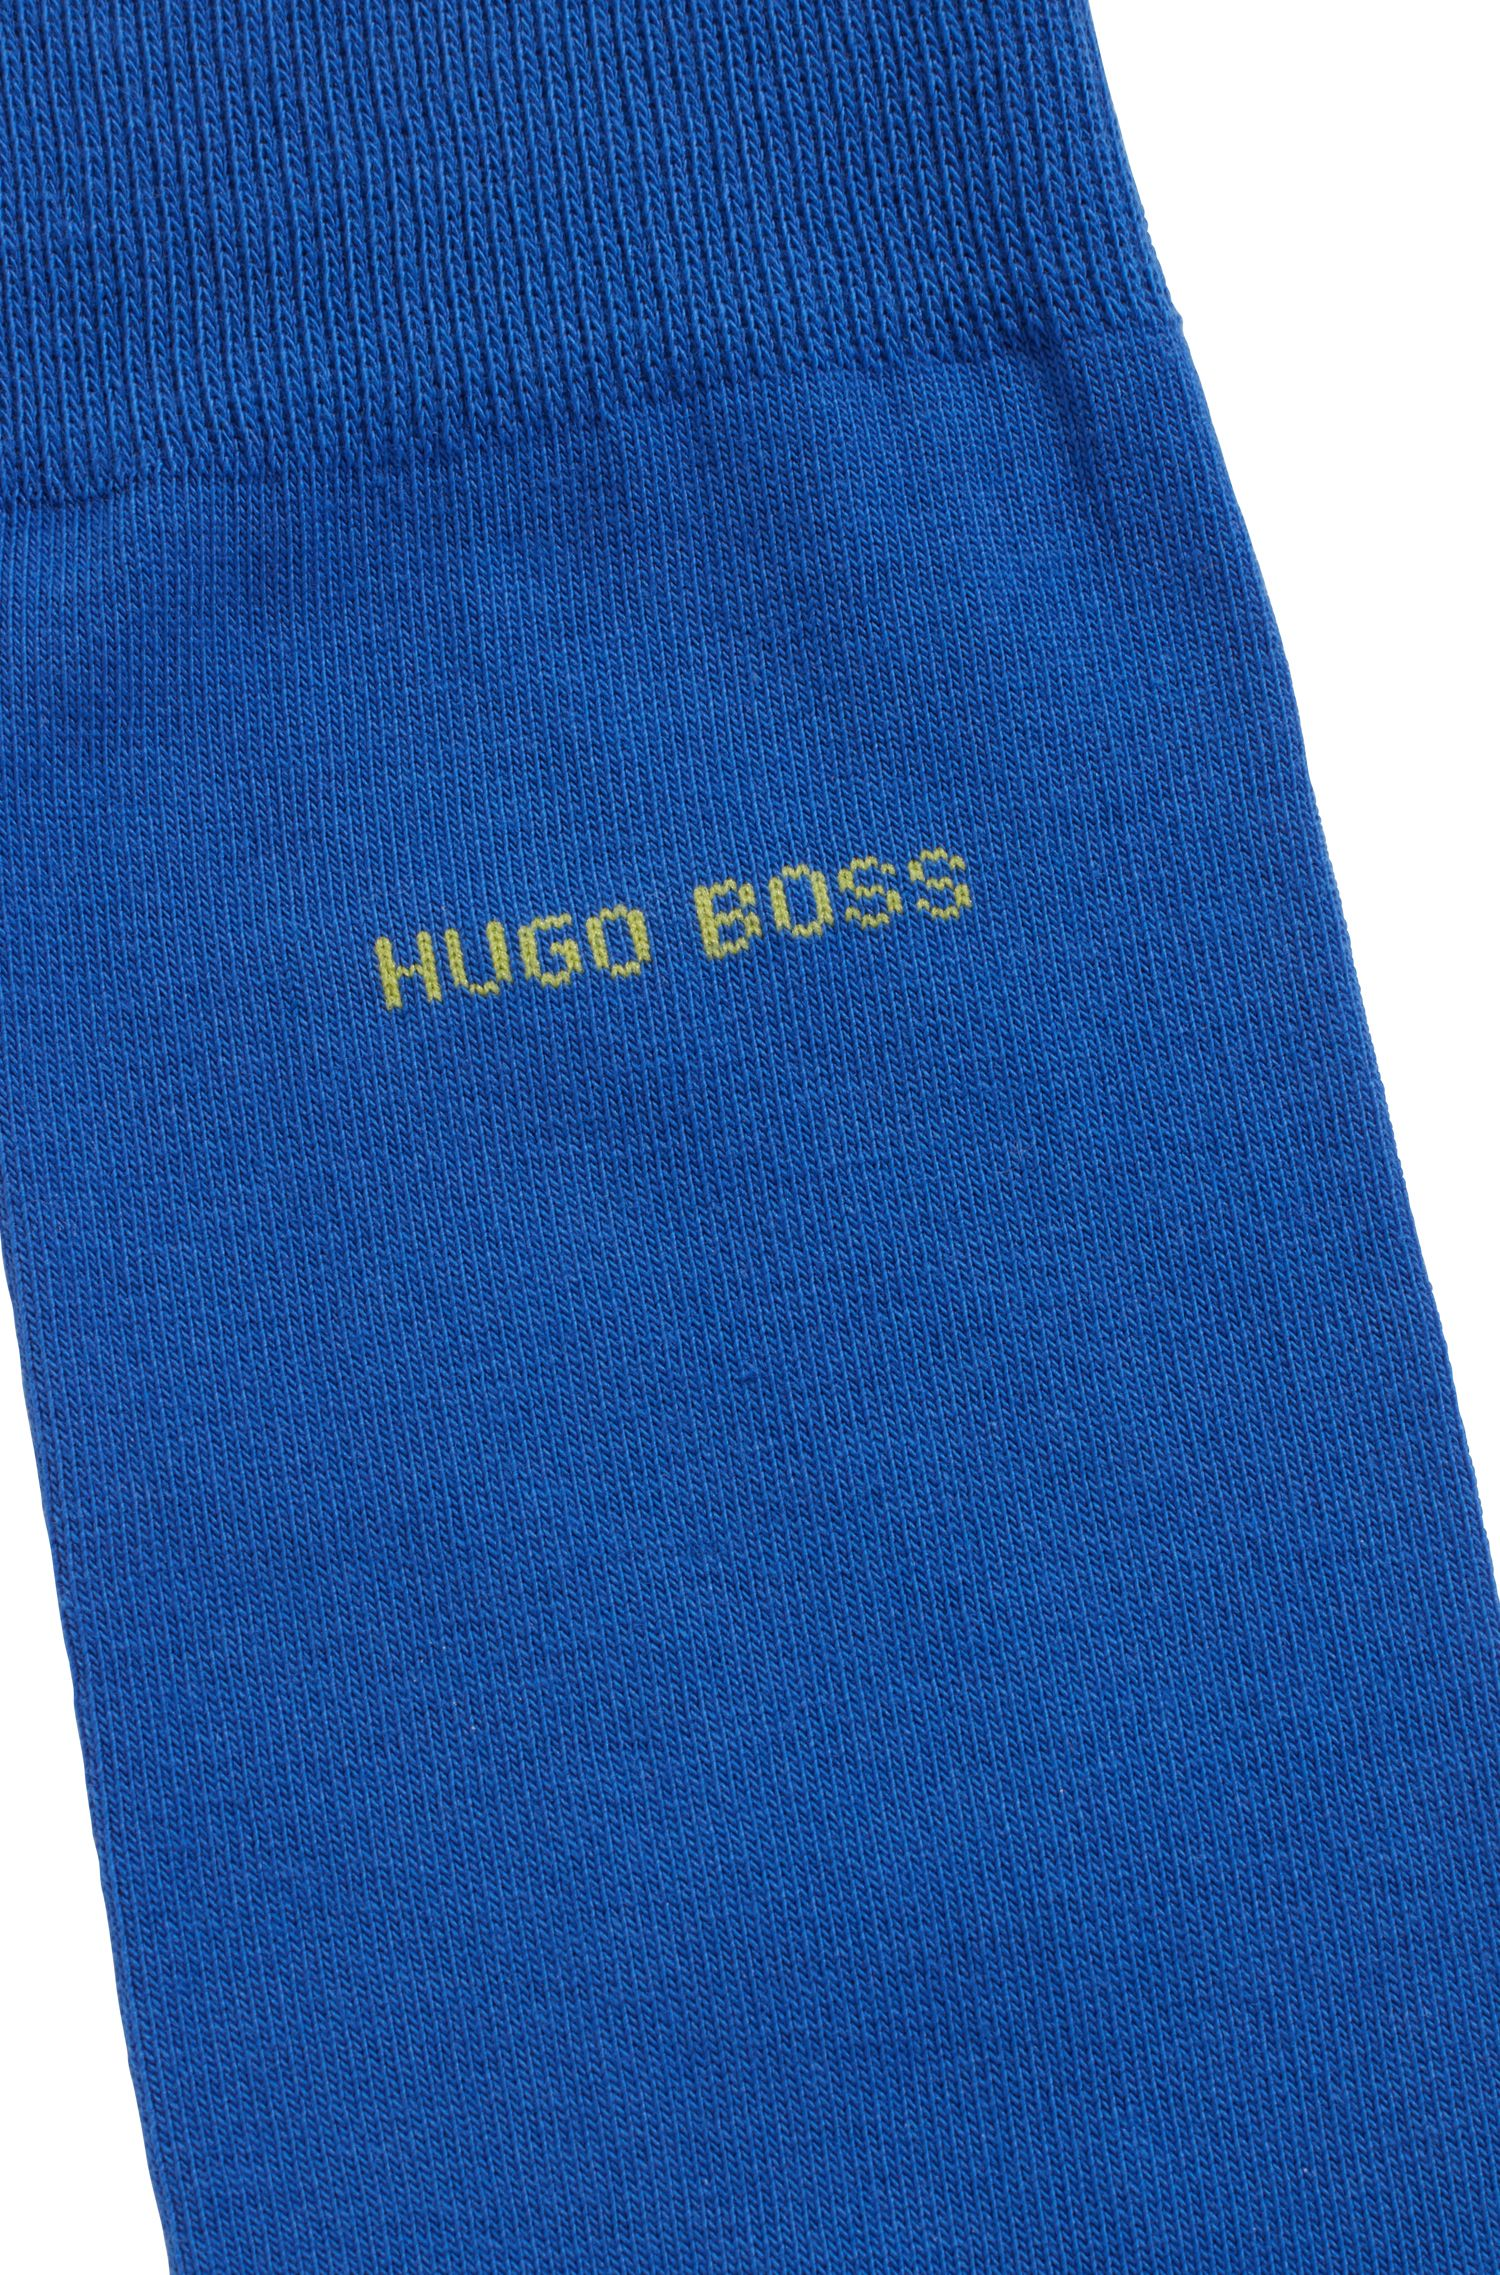 Regular-length socks in combed stretch cotton, Blue